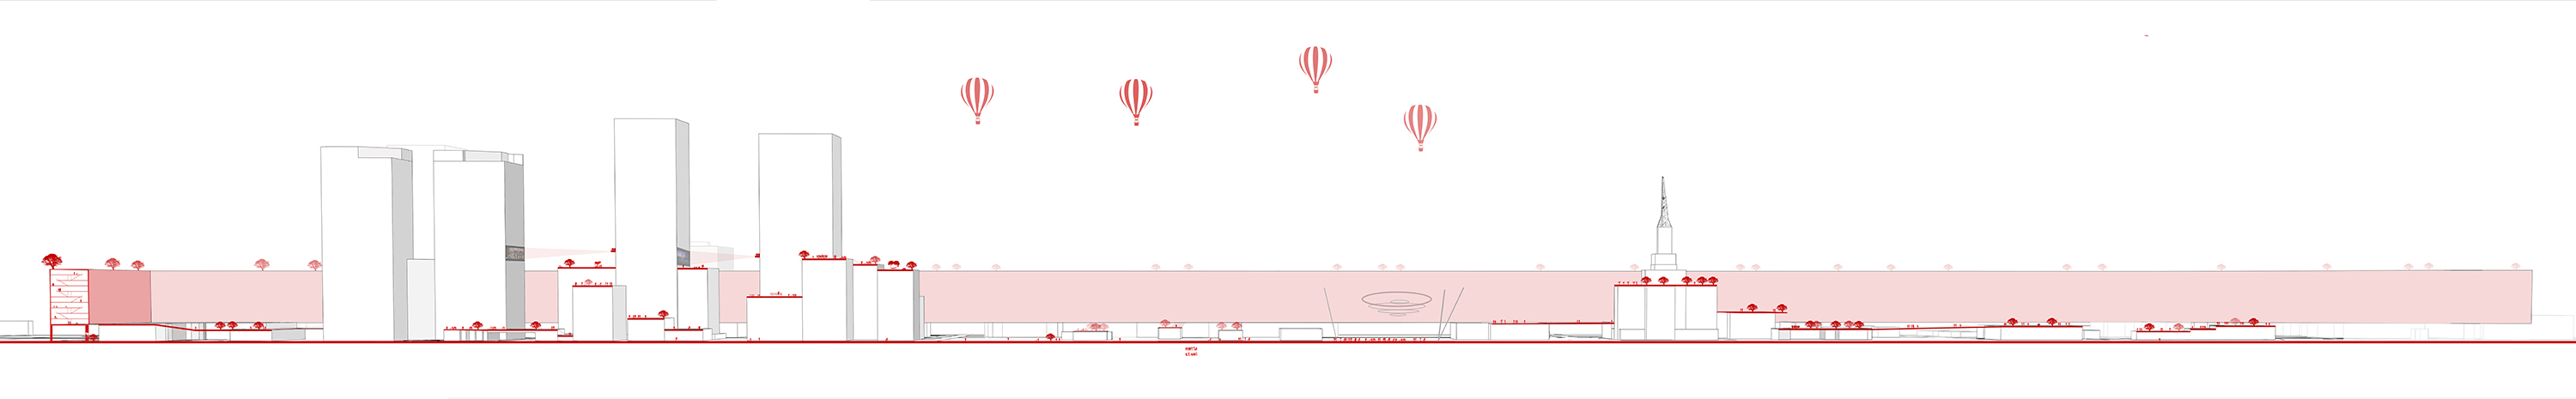 Linear urban section illustrating the scale and massing of housing above the Phoenix lightrail by student Lexi Sanchez